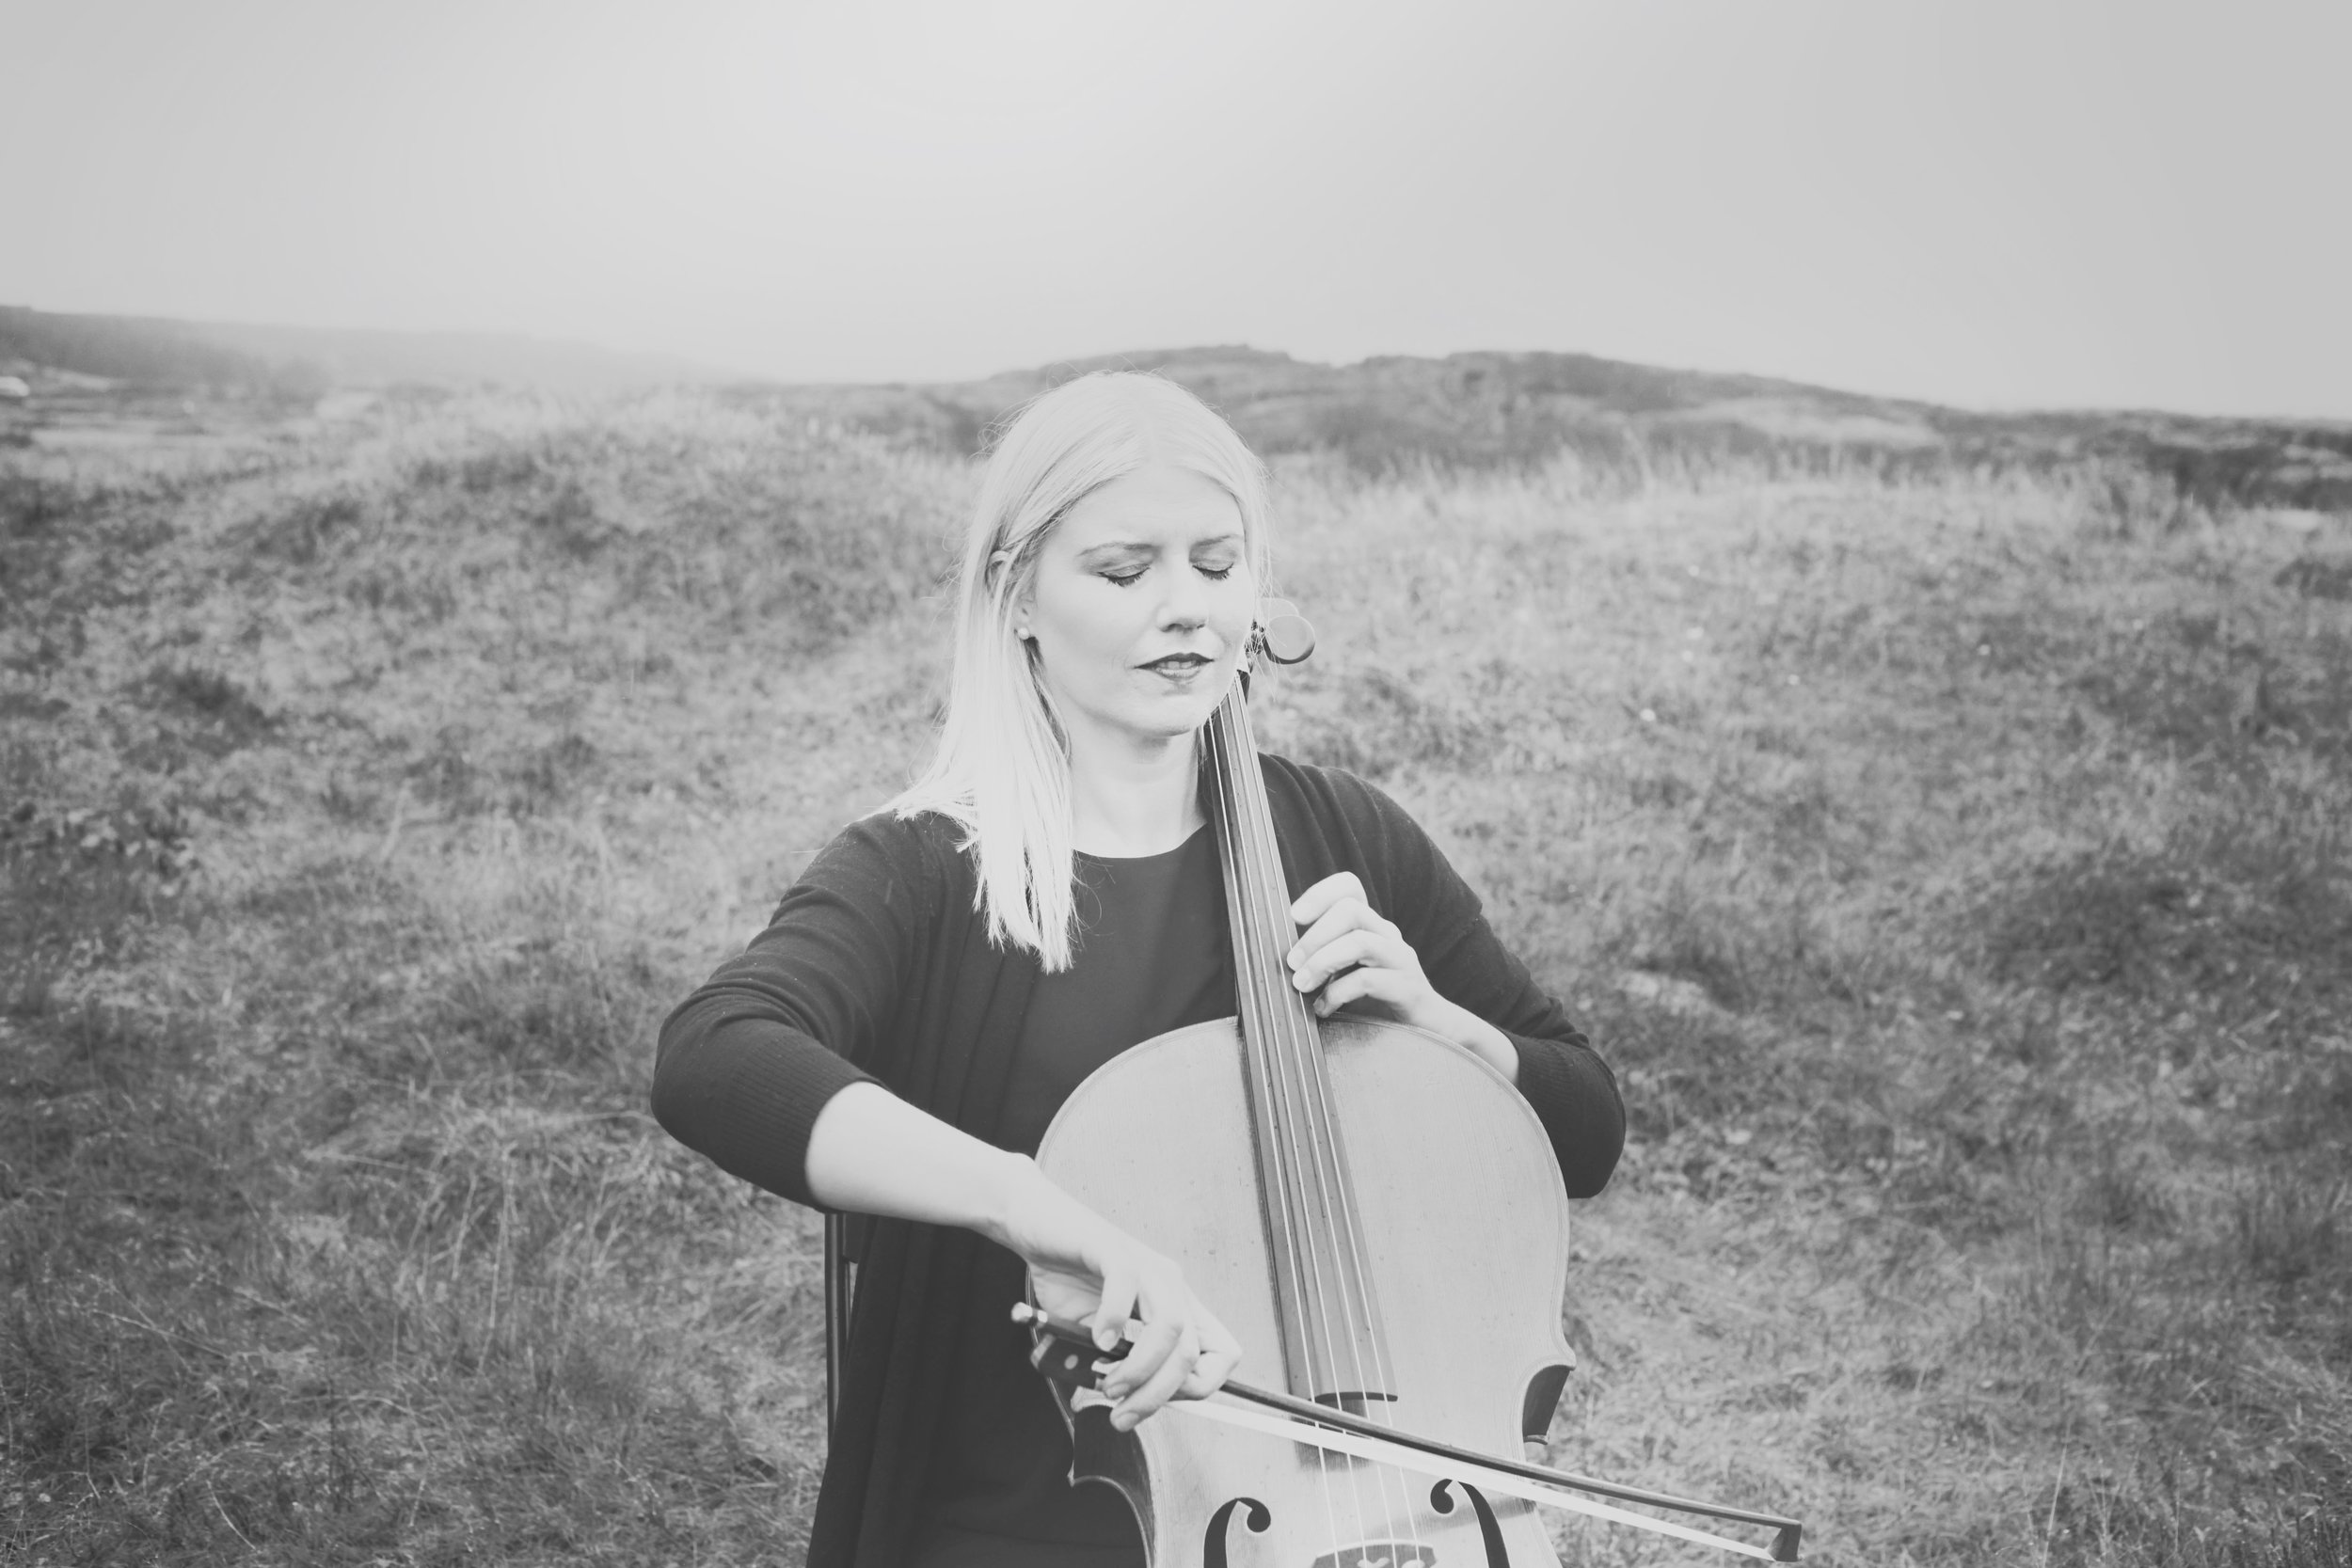 Catherine Maria (Iceland) - CATHERINE MARIA studied cello at the Academy of the Arts in Iceland and Bern University of the Arts, Switzerland. She also did an NAIP International Master of Music, specializing in innovative practice and how to reach new audiences with her music. She loves collaborating with different musicians and experimenting with new ideas in leading diverse artistic projects. She loves great chocolate, good conversations, and fun trips in beautiful nature!